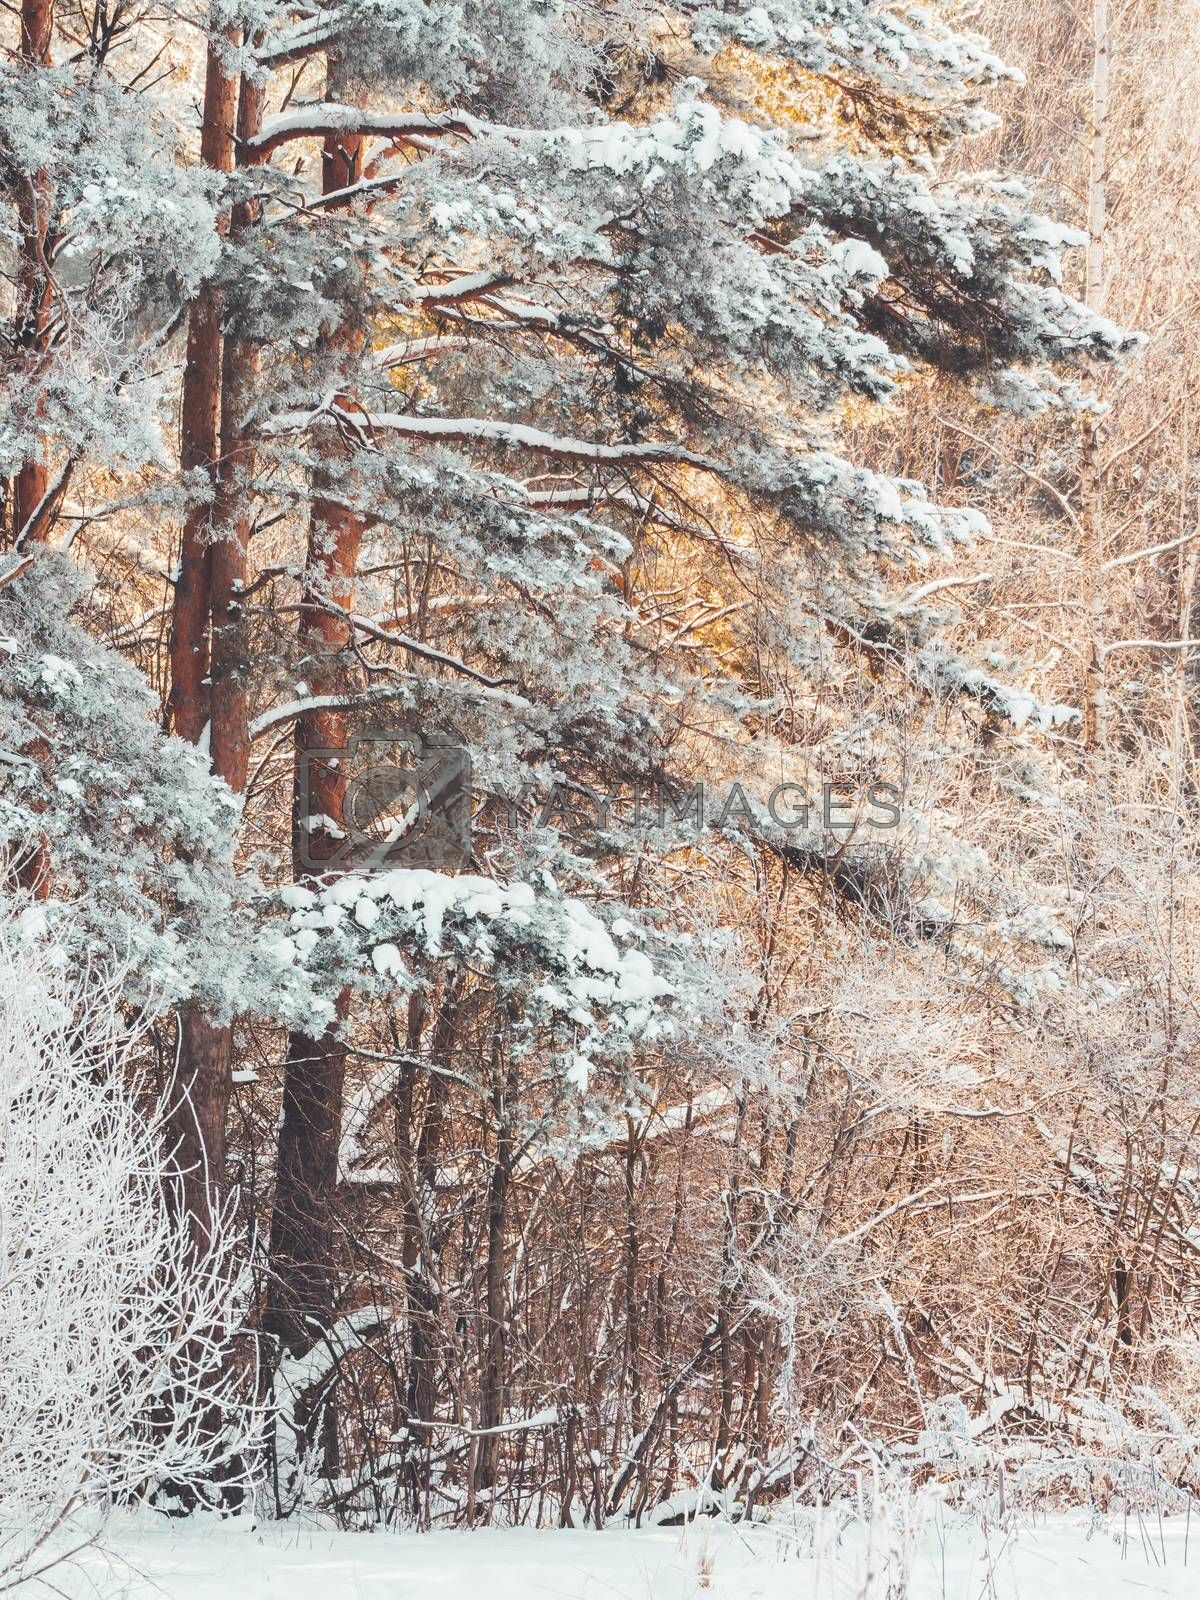 Winter in forest. Snowy weather in wood at sunny day. Pine trees after snowfall. Natural background.